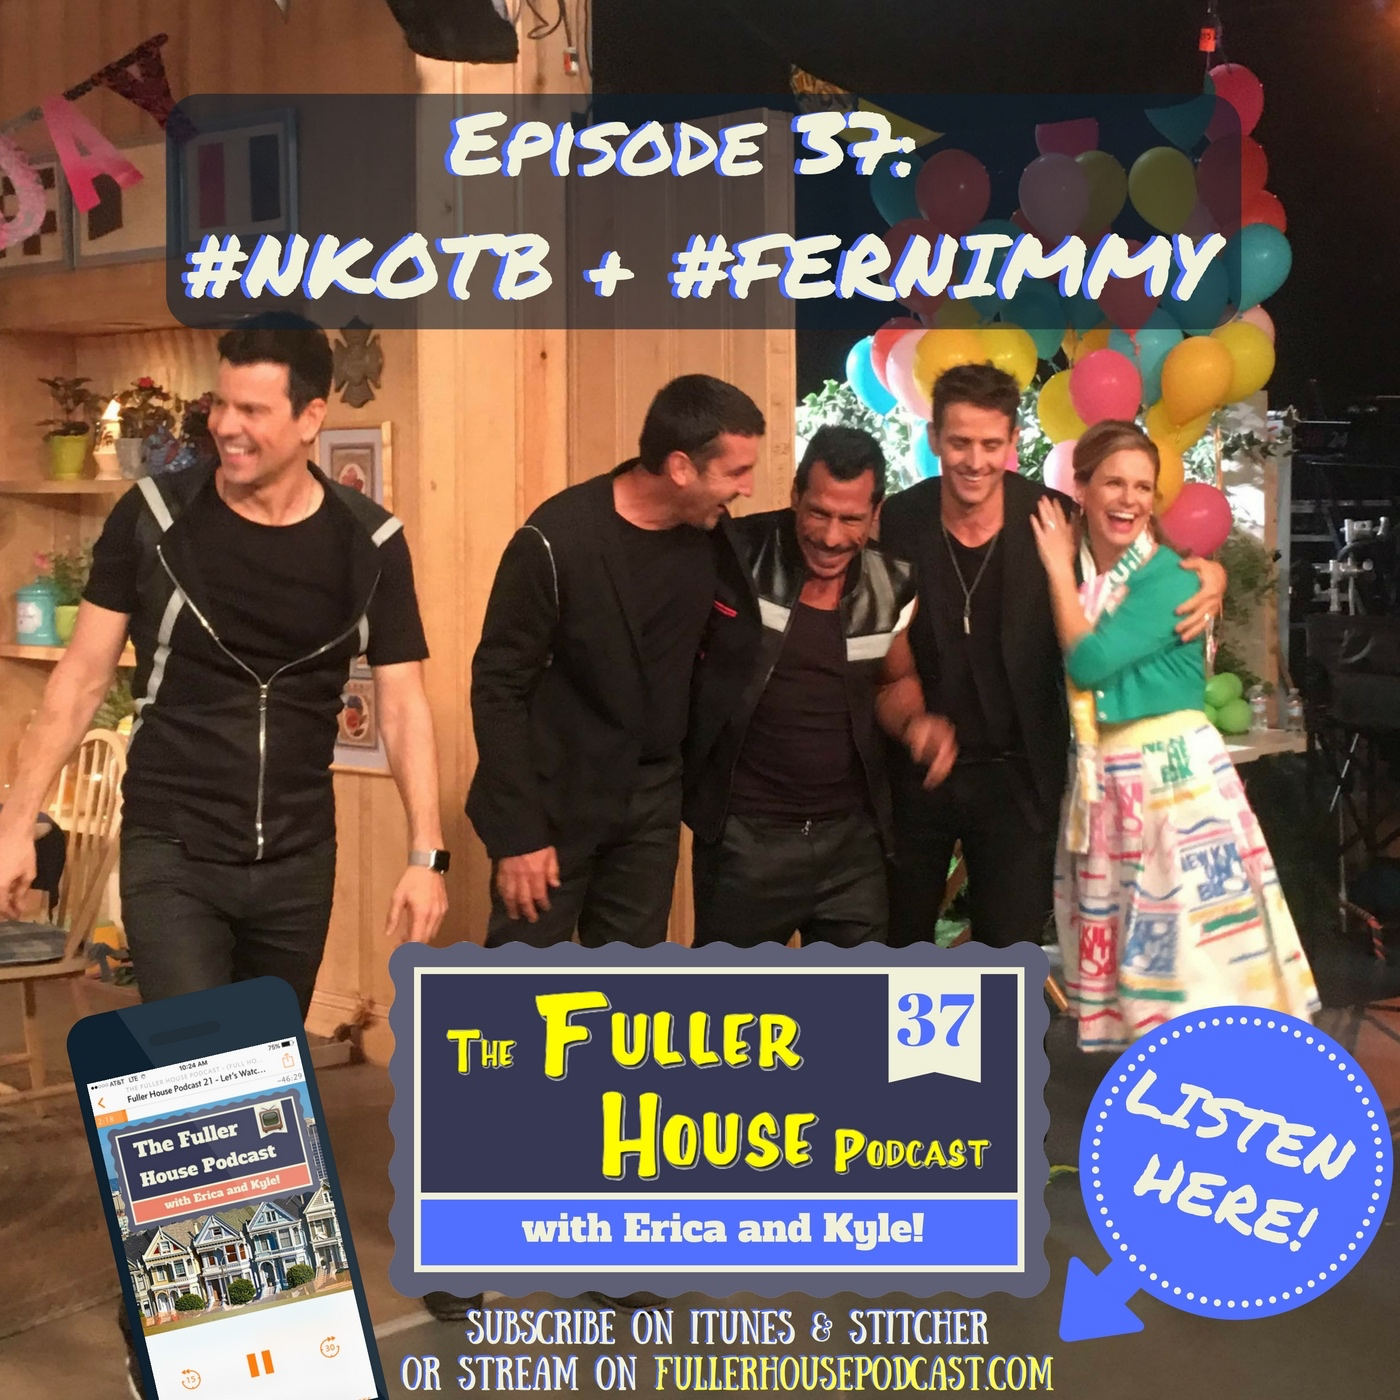 Fuller House Podcast 37 - Fan-girling it up over the New Kids on the Block + S1:E12 Save the Dates Recap